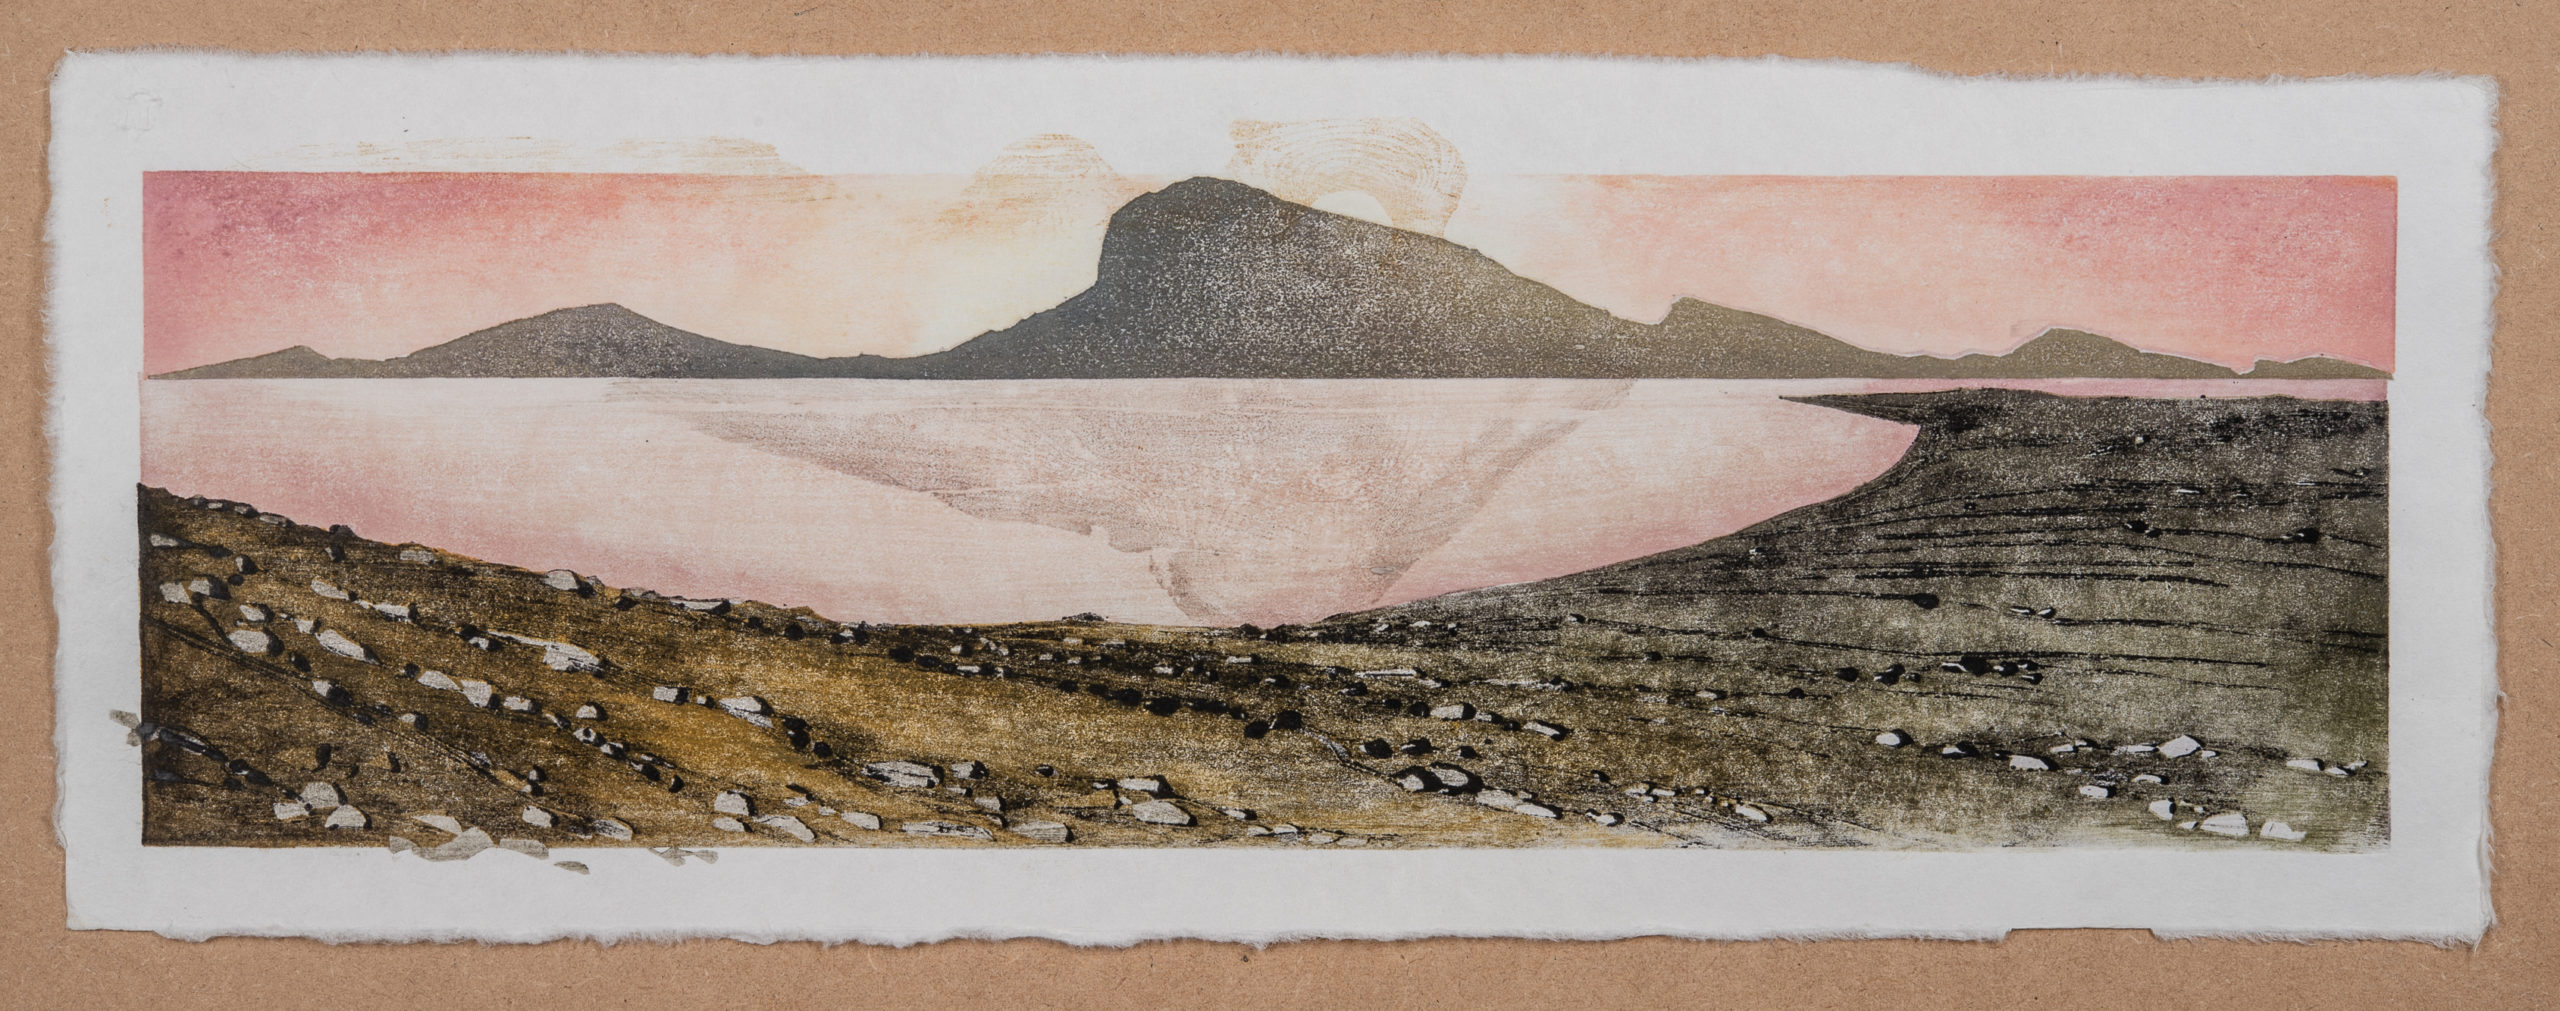 Laura Boswell. Near Applecross, rose sky (Woodblock - 560 x180 mm)